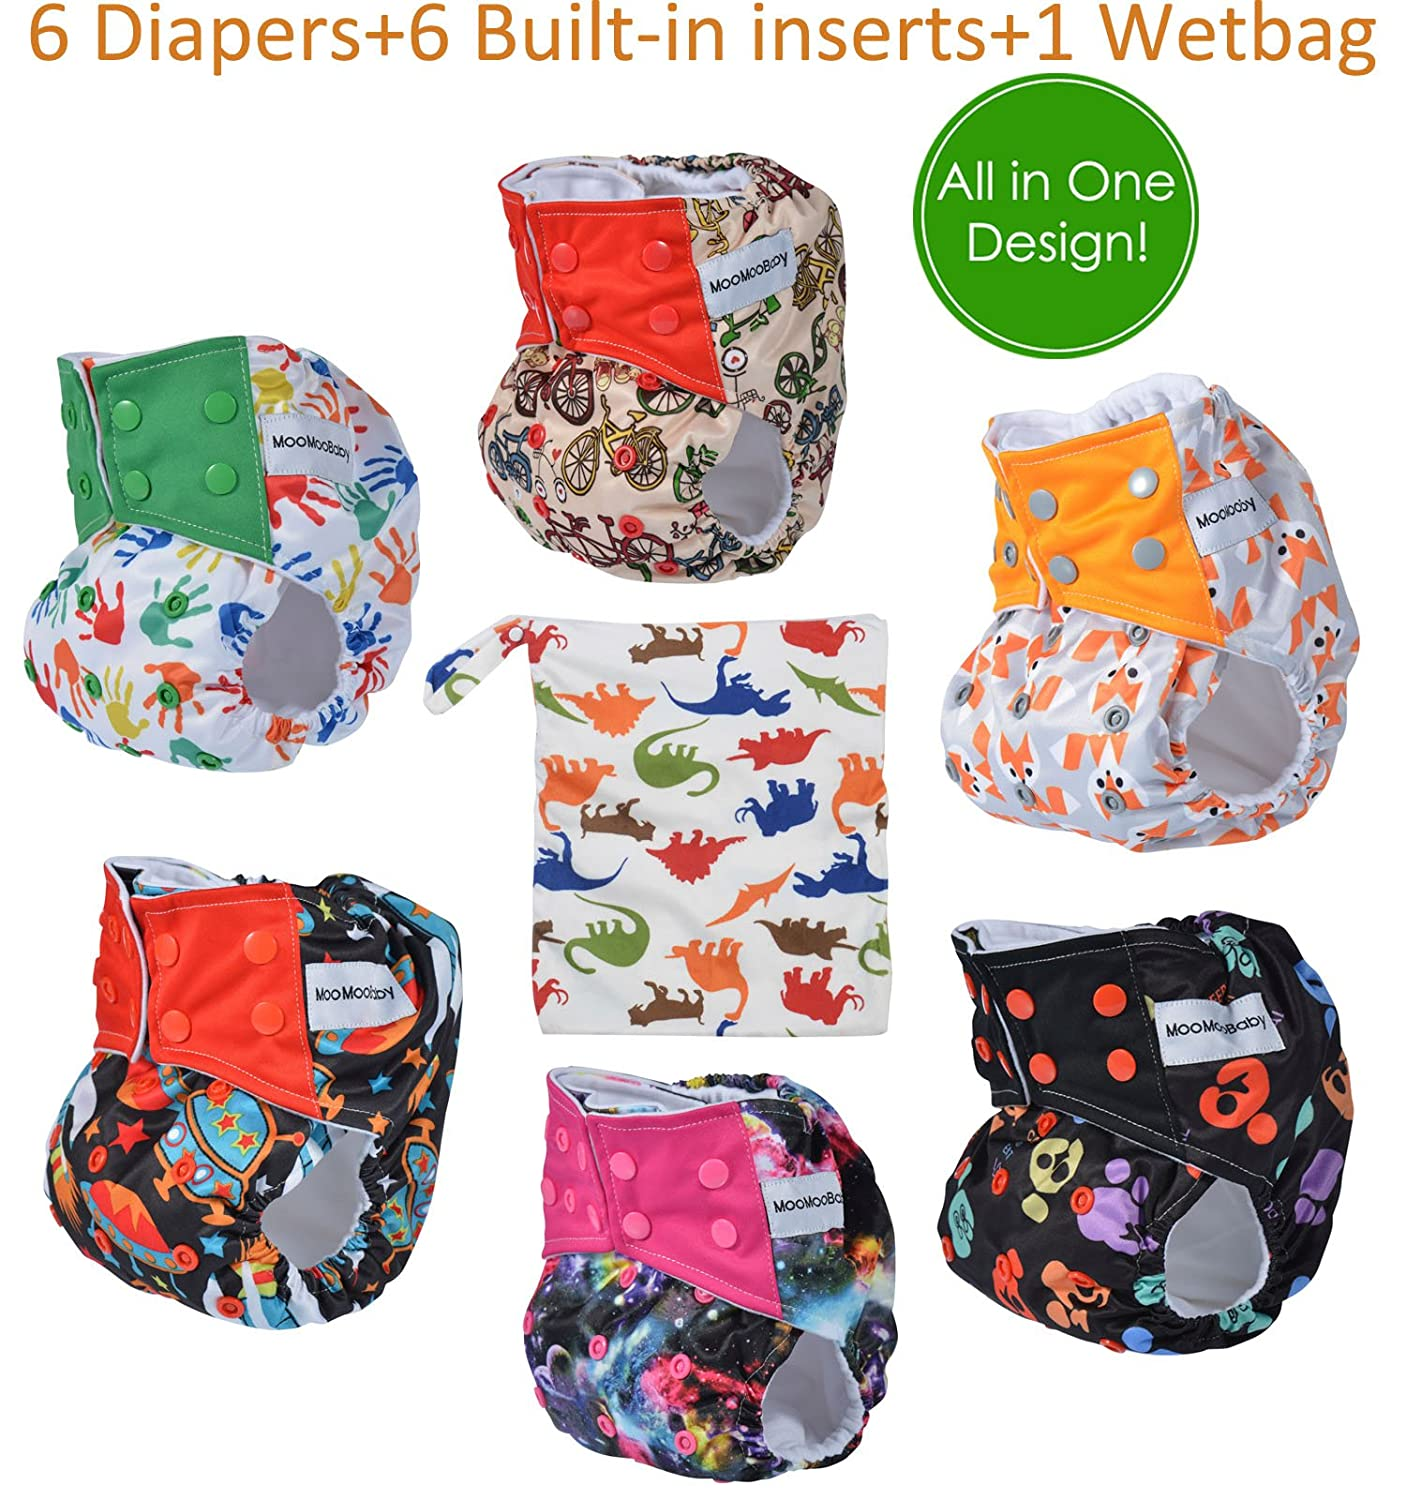 Amazon.com : All in One Shell-Snap Cloth Pocket Diapers, Adjustable Size, 6  Pack with 6 Built-in Inserts and 1 Diaper Bag : Baby